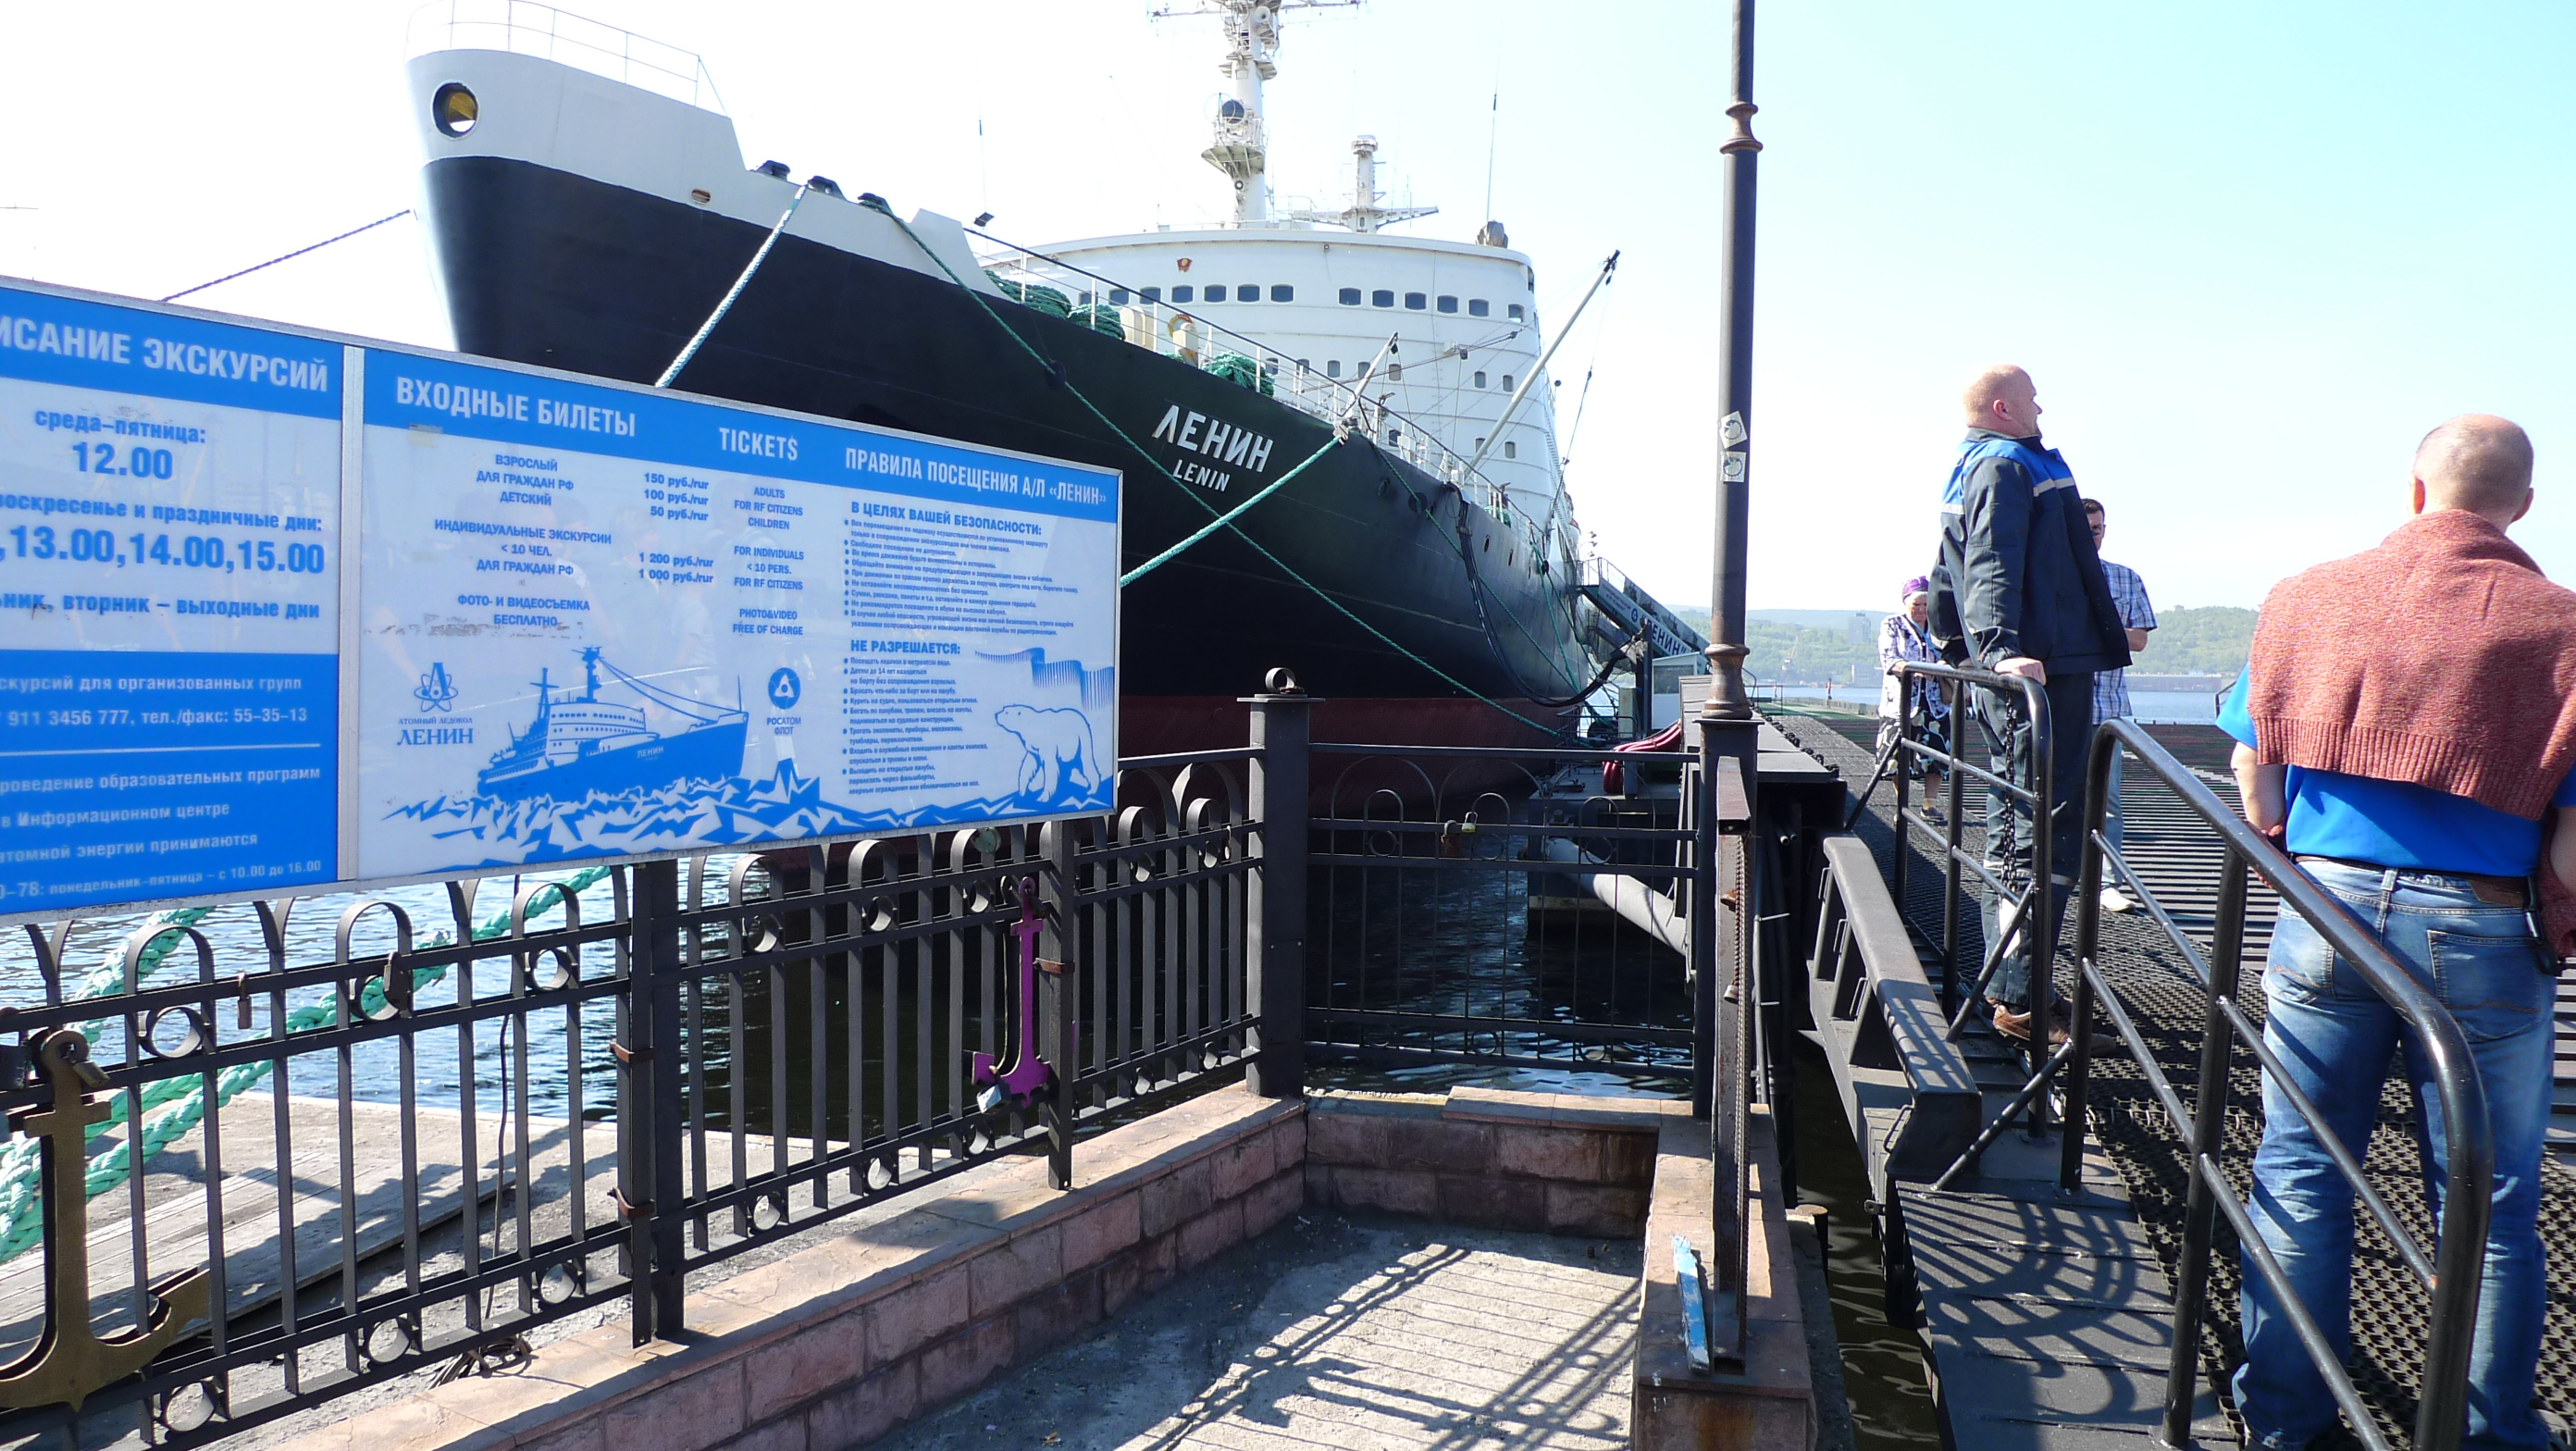 The icebreaker Lenin has been preserved as a museum ship in the Port of Murmansk, Russia. Photo taken on July 20, 2014.